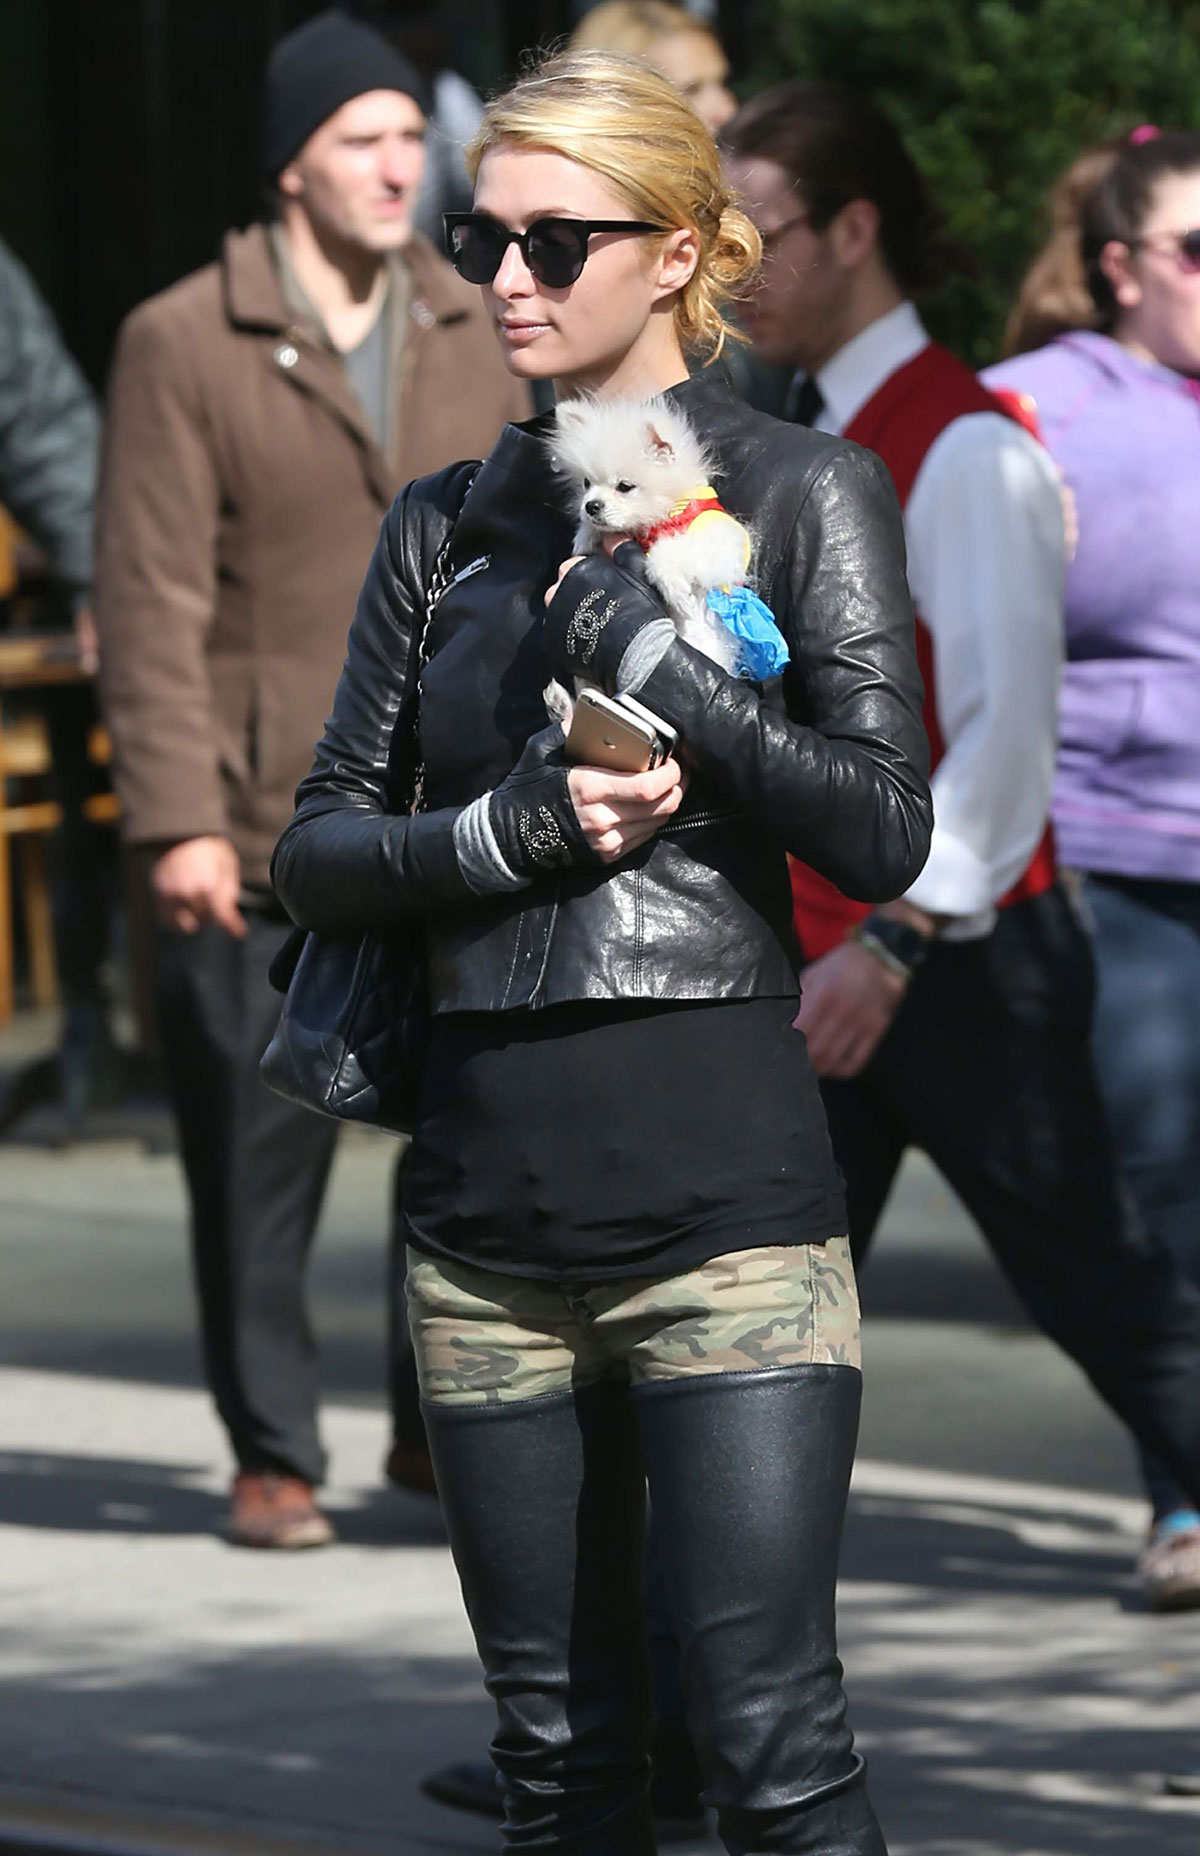 Paris Hilton seen with her dog waiting for a cab